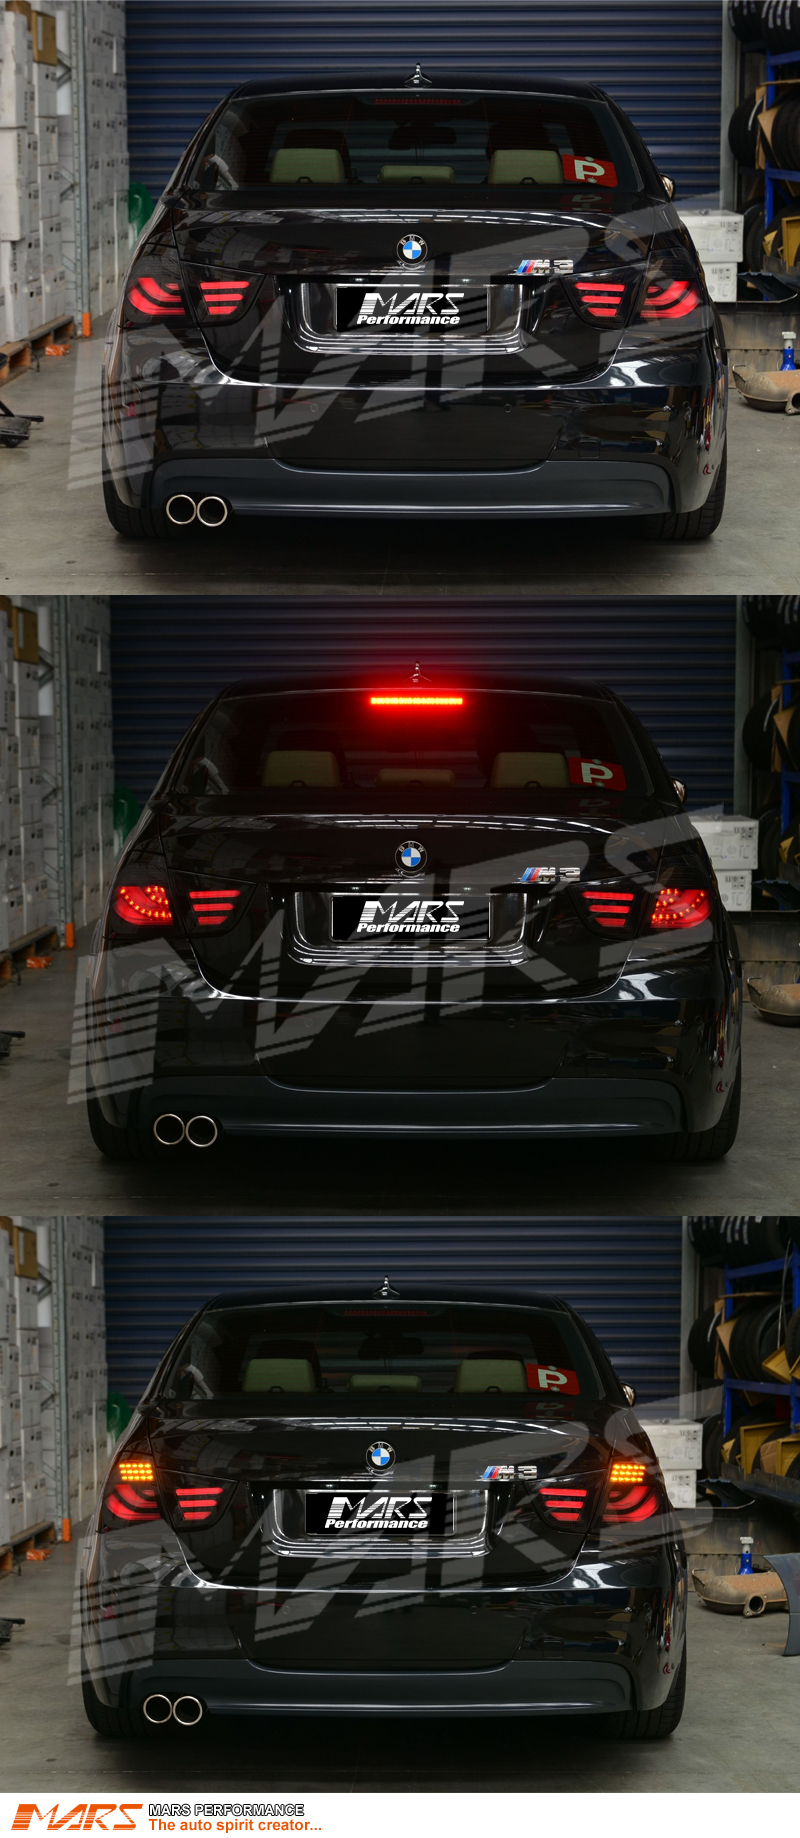 smoked black led tail lights for bmw e90 lci 09 11 320i. Black Bedroom Furniture Sets. Home Design Ideas